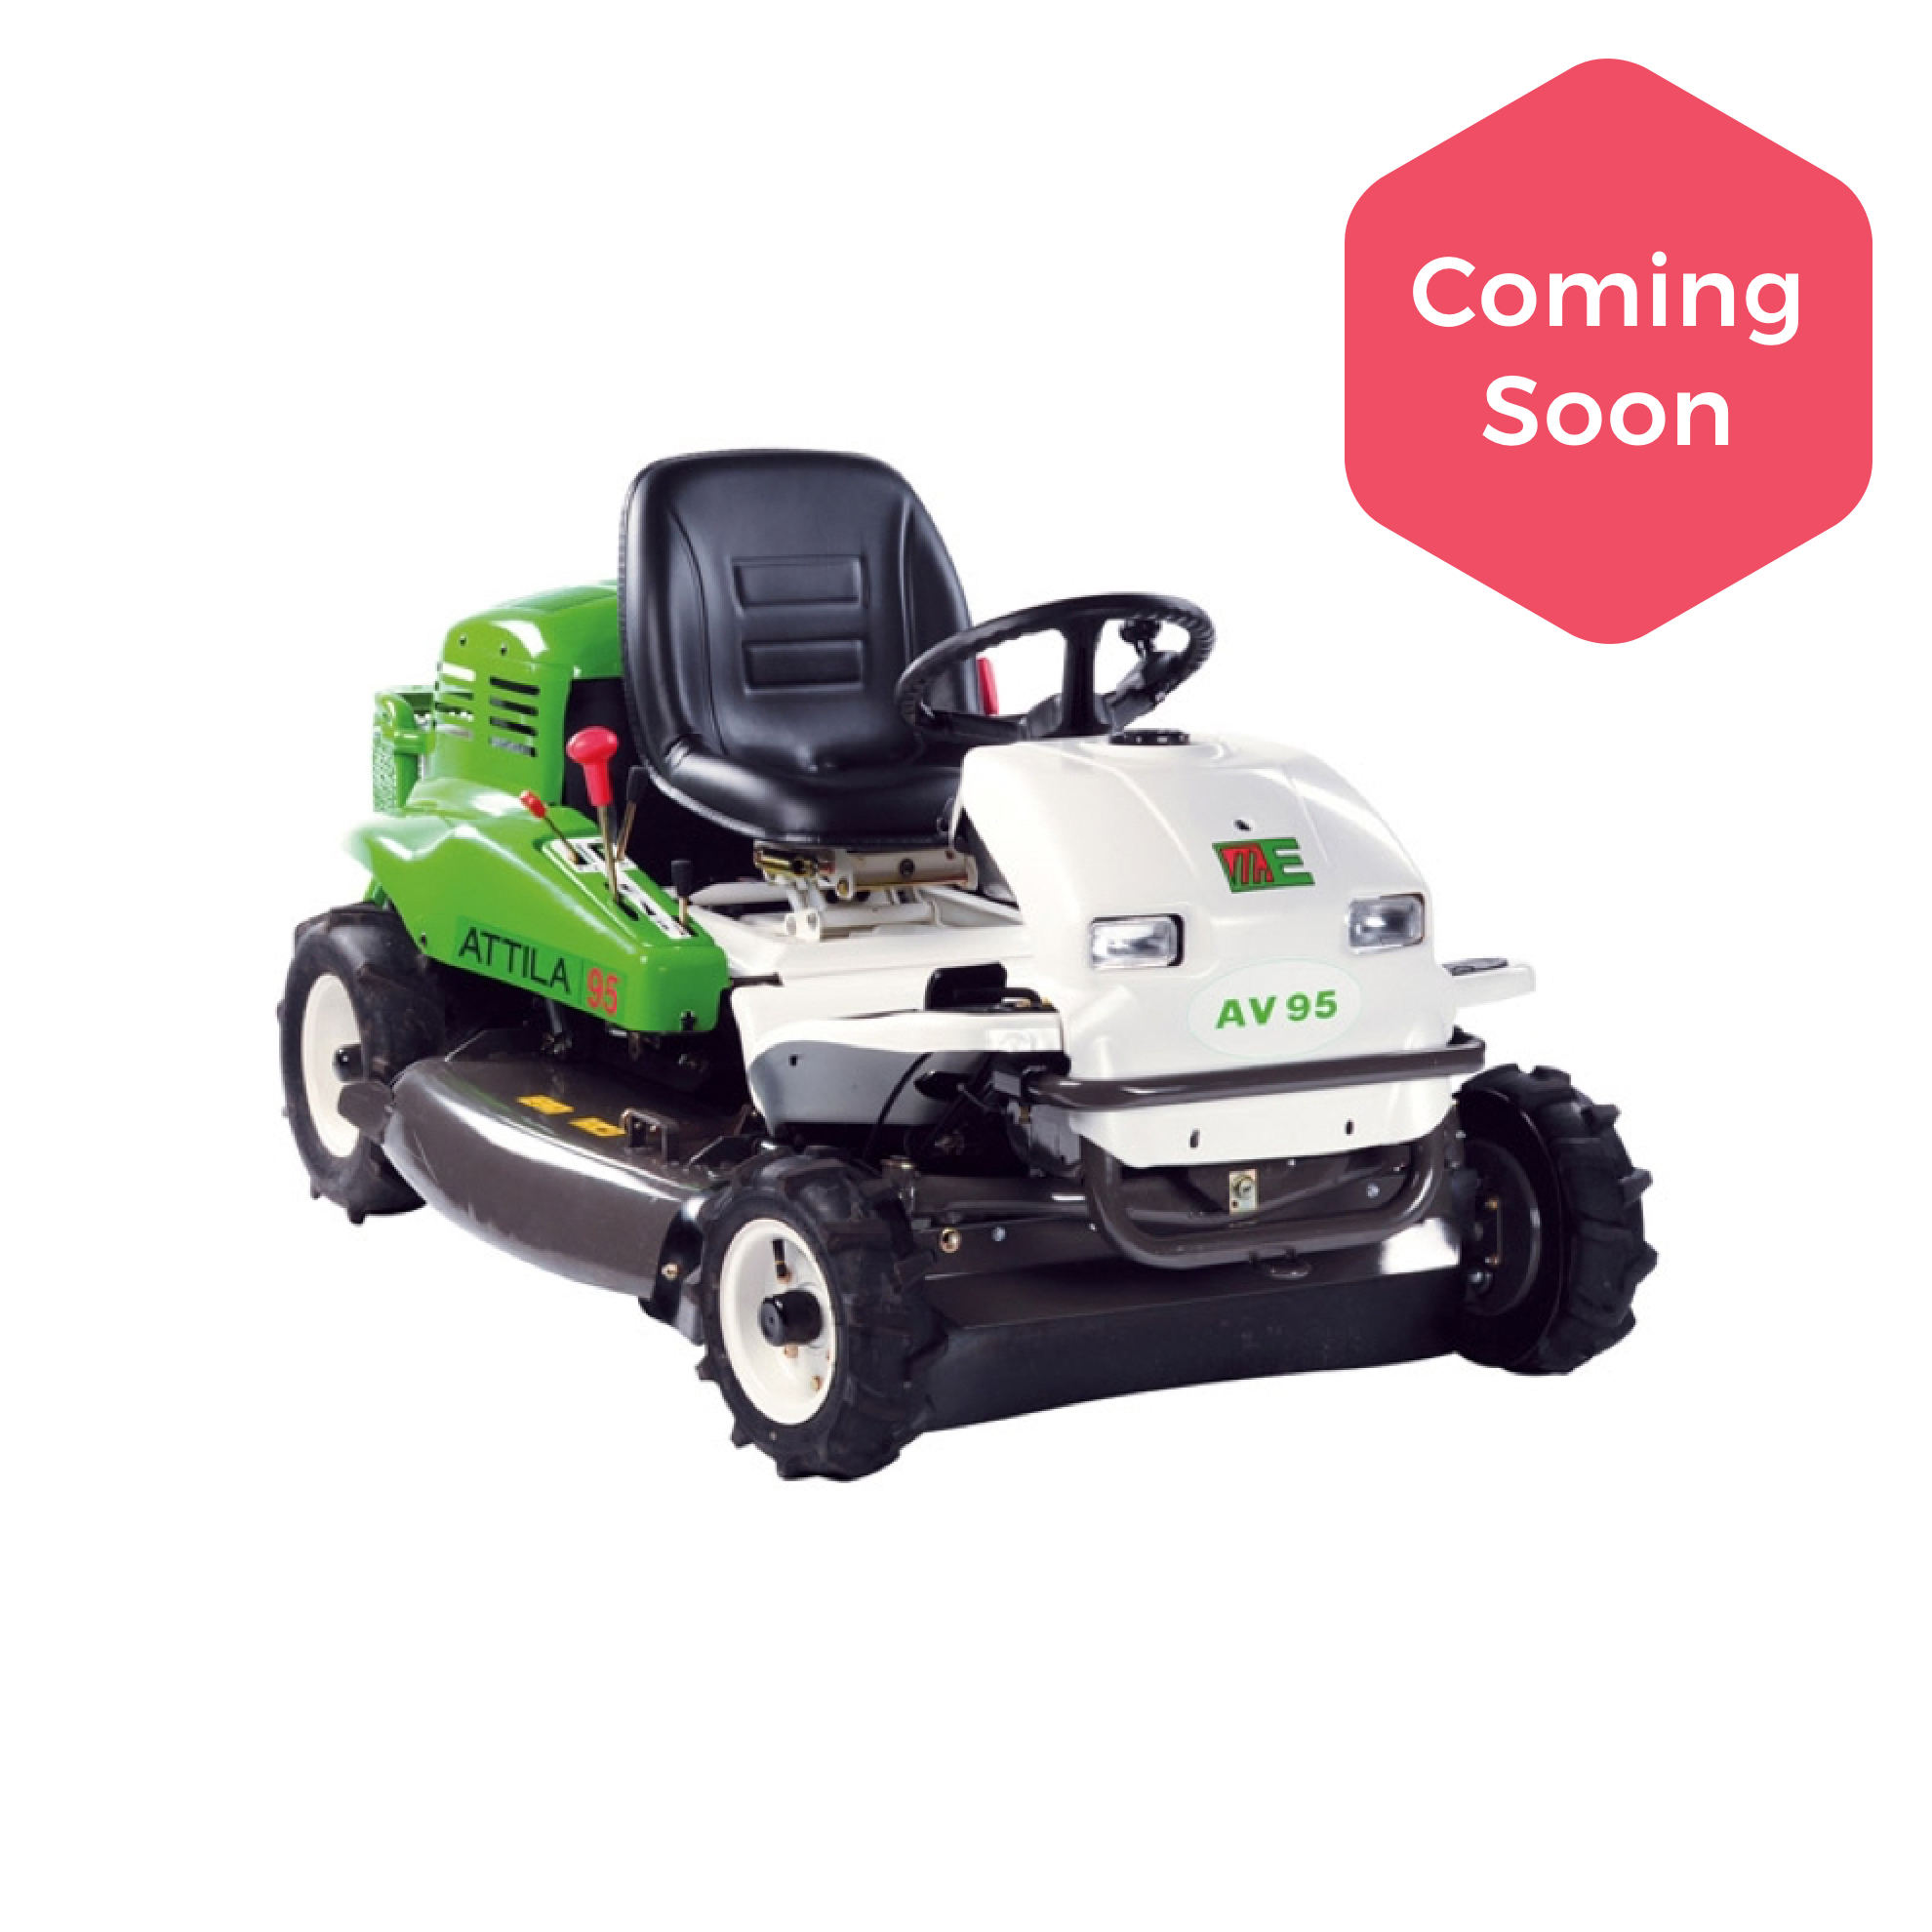 Etesia Attila AV95 Ride-on Brushcutter